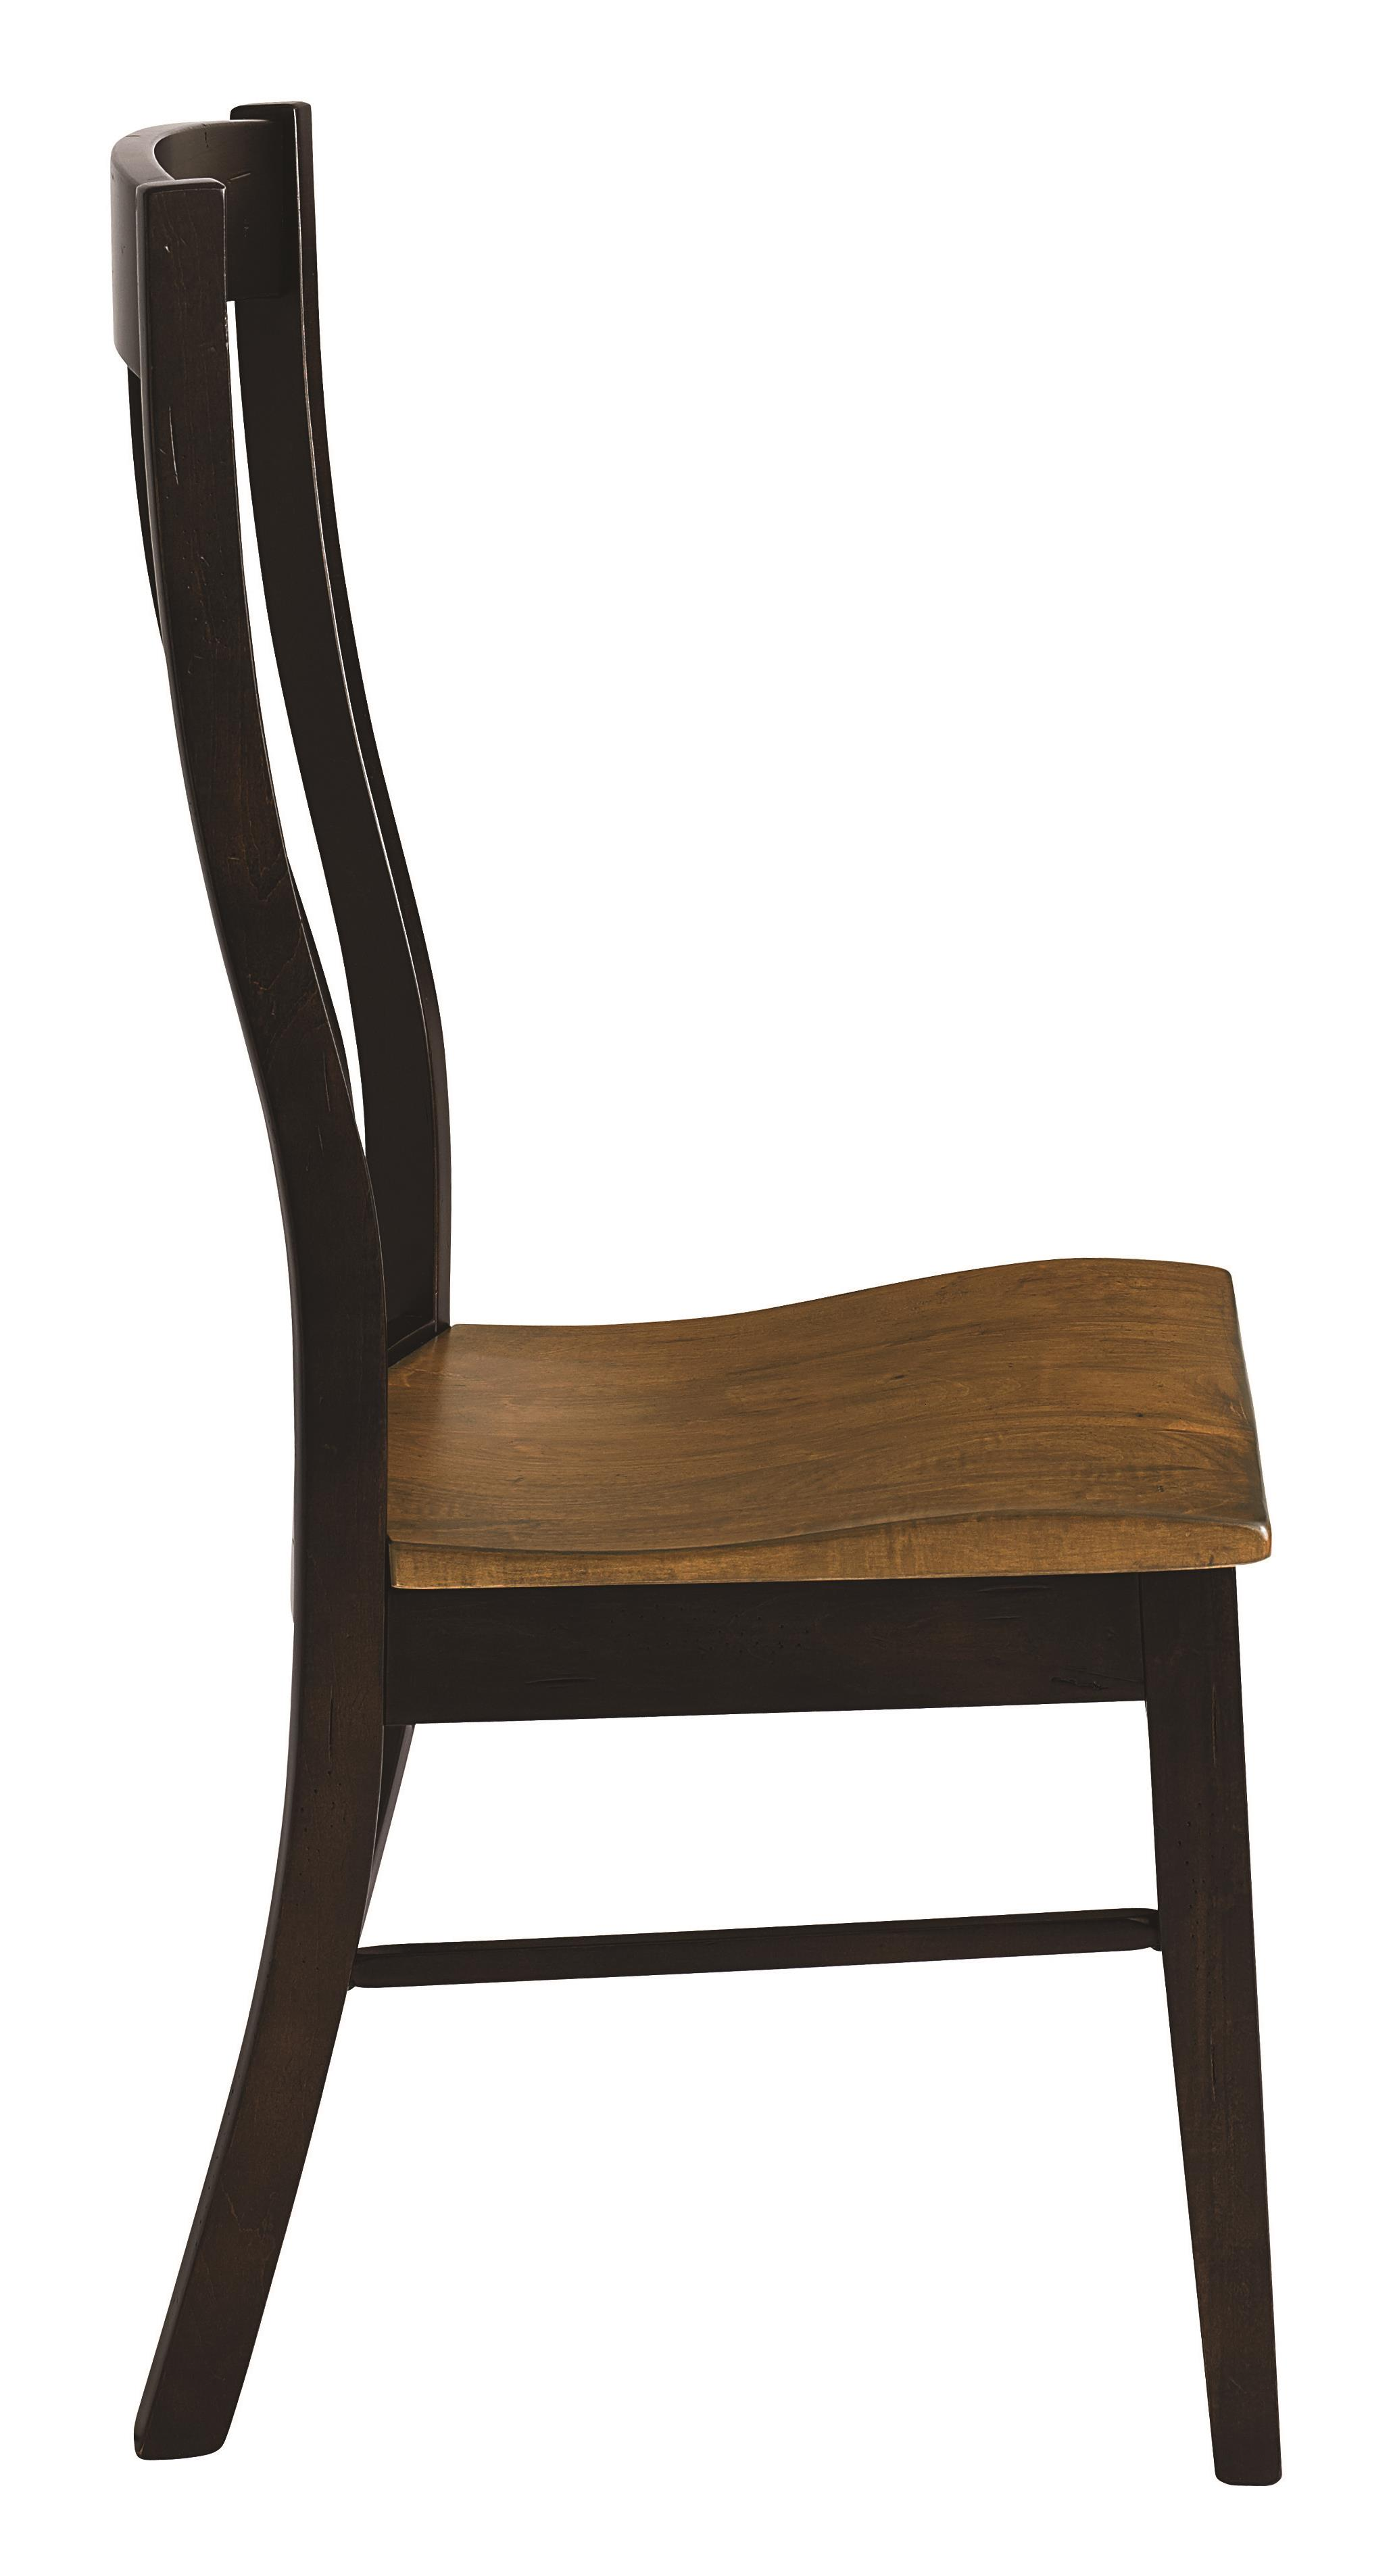 Bassett bench made 4015 2000 boone transitional side chair for Made dining chairs